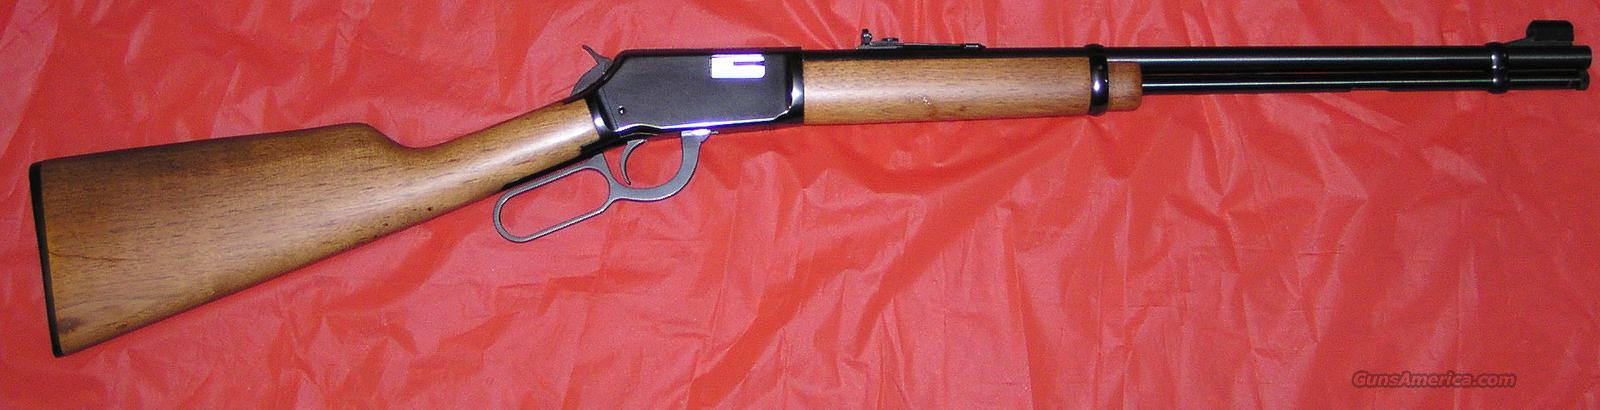 WINCHESTER 9422- MADE IN 1975  Guns > Rifles > Winchester Rifles - Modern Lever > Model 94 > Post-64